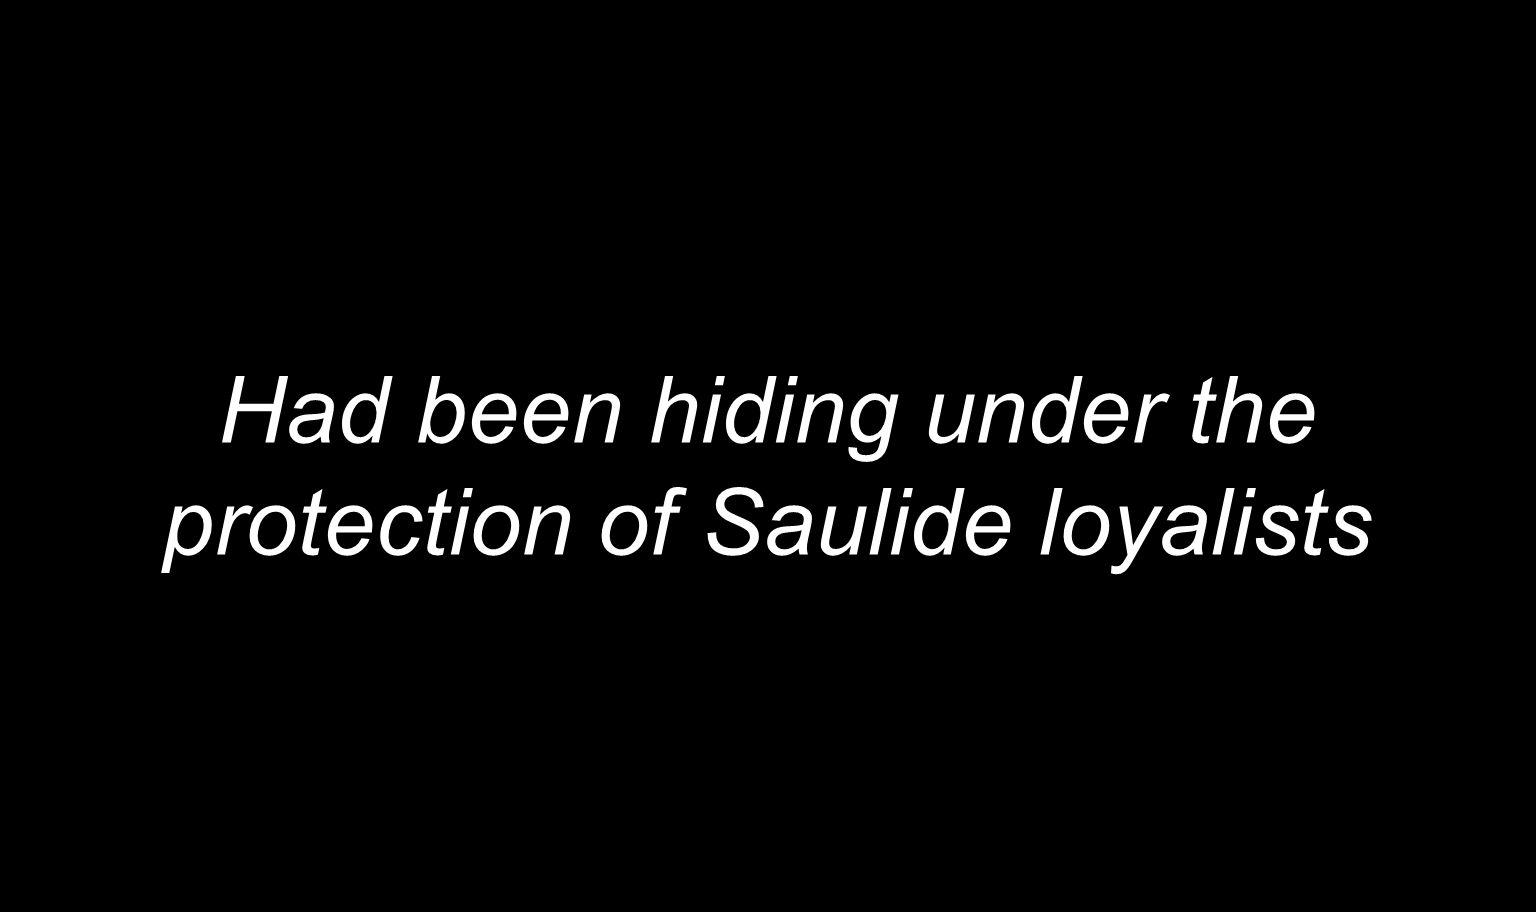 Had been hiding under the protection of Saulide loyalists